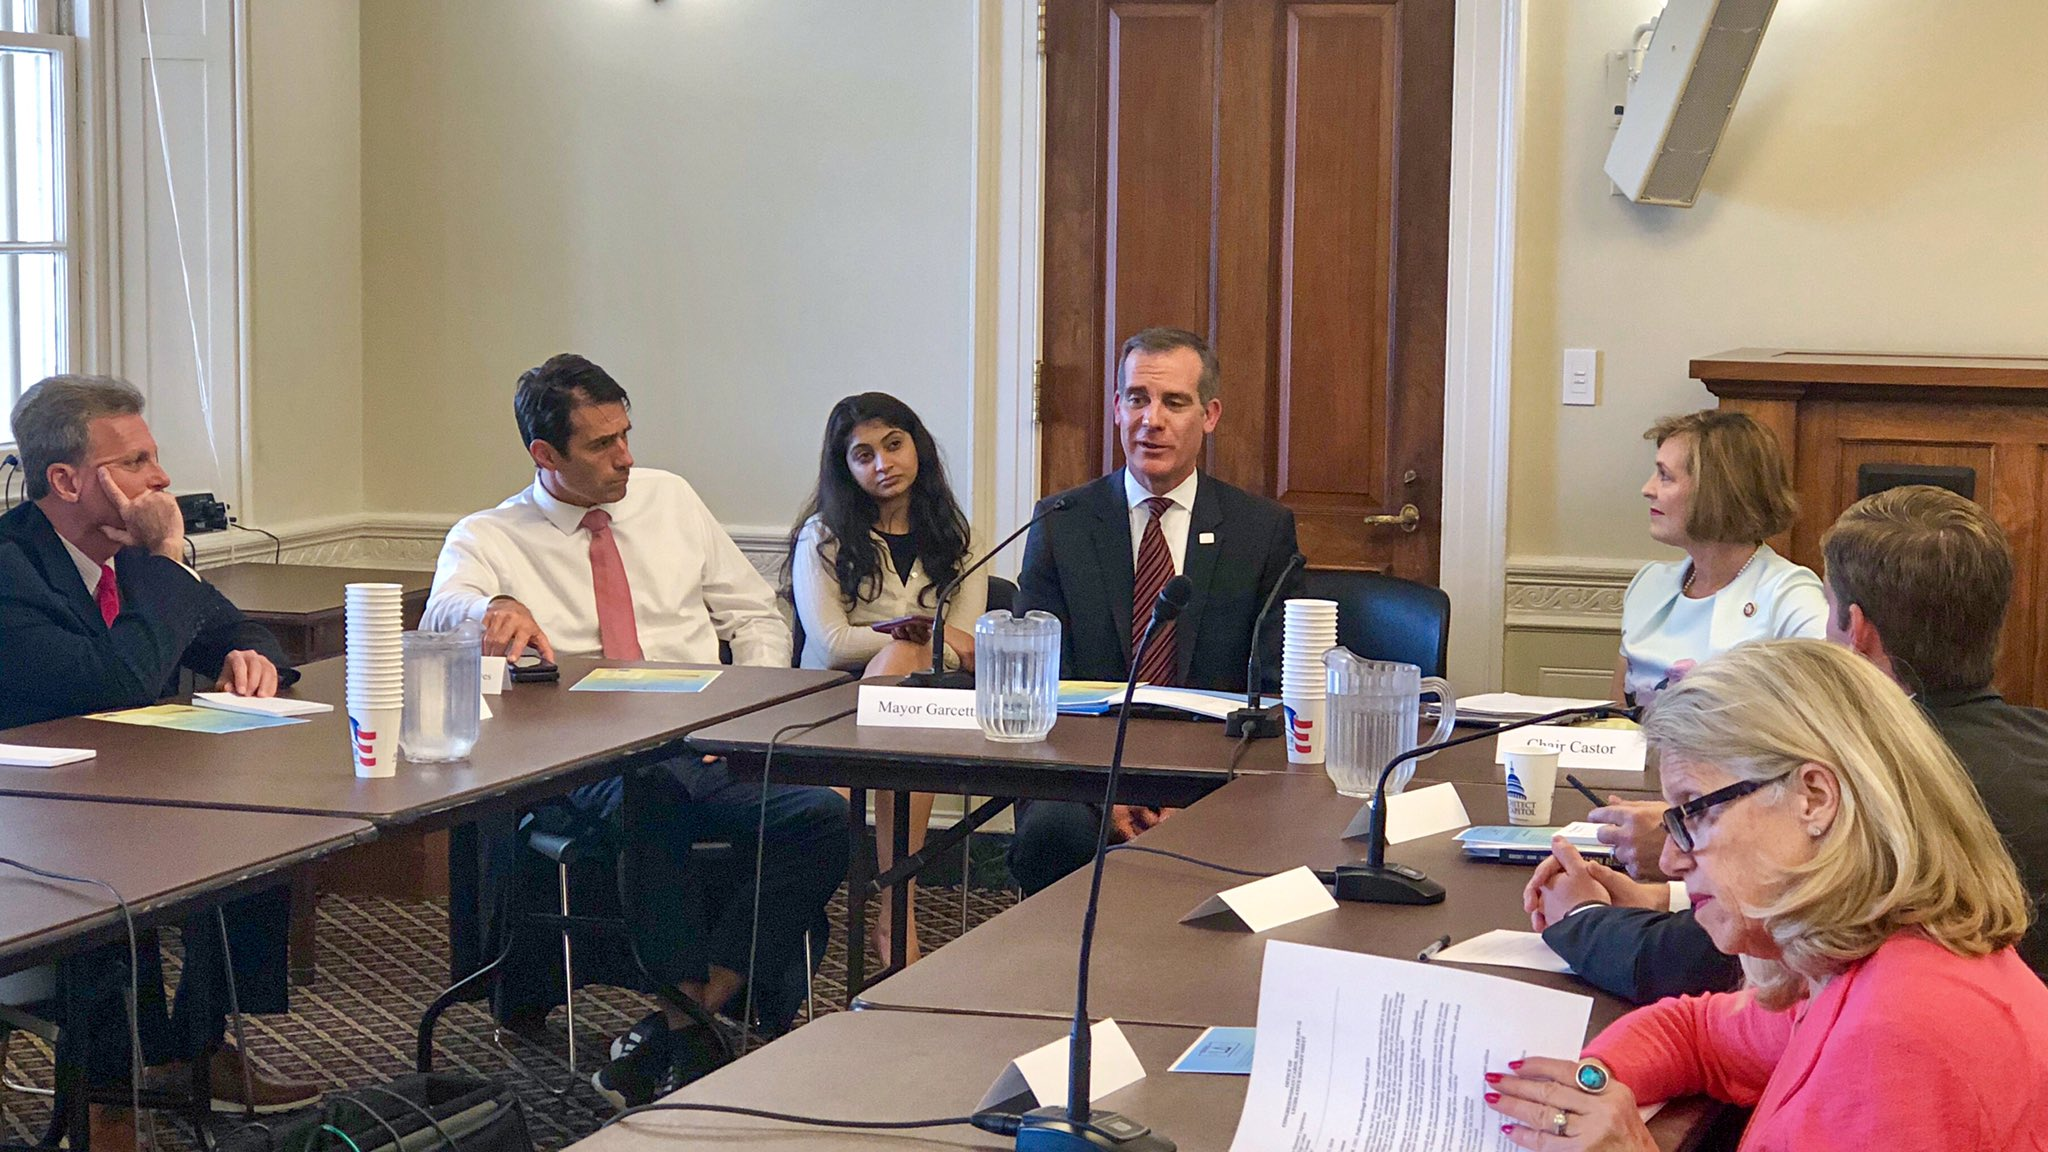 Mayor Garcetti meets with members of the Select Committee